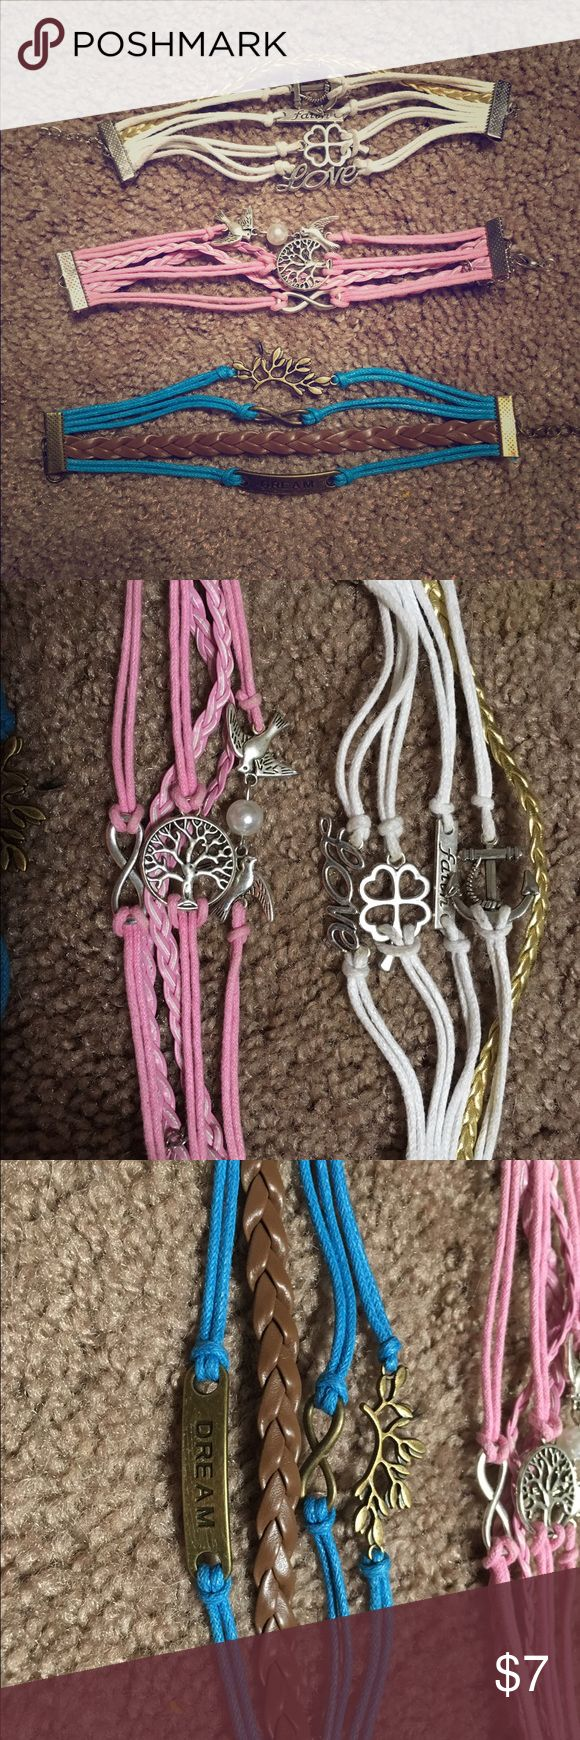 """Lot of Bracelets Beautiful and unique bracelets that say things like """"faith, love, dream"""" and have the infinity sign on them, the tree of love, love birds, lucky 4 leaf clovers, and anchors. Brand new! I have other great deals on my page, check it out! 💜 BUNDLE, OFFER AND I WILL REDUCE THE PRICE- DEPENDING ON HOW MUCH YOU BUY!❣️ Jewelry Bracelets"""